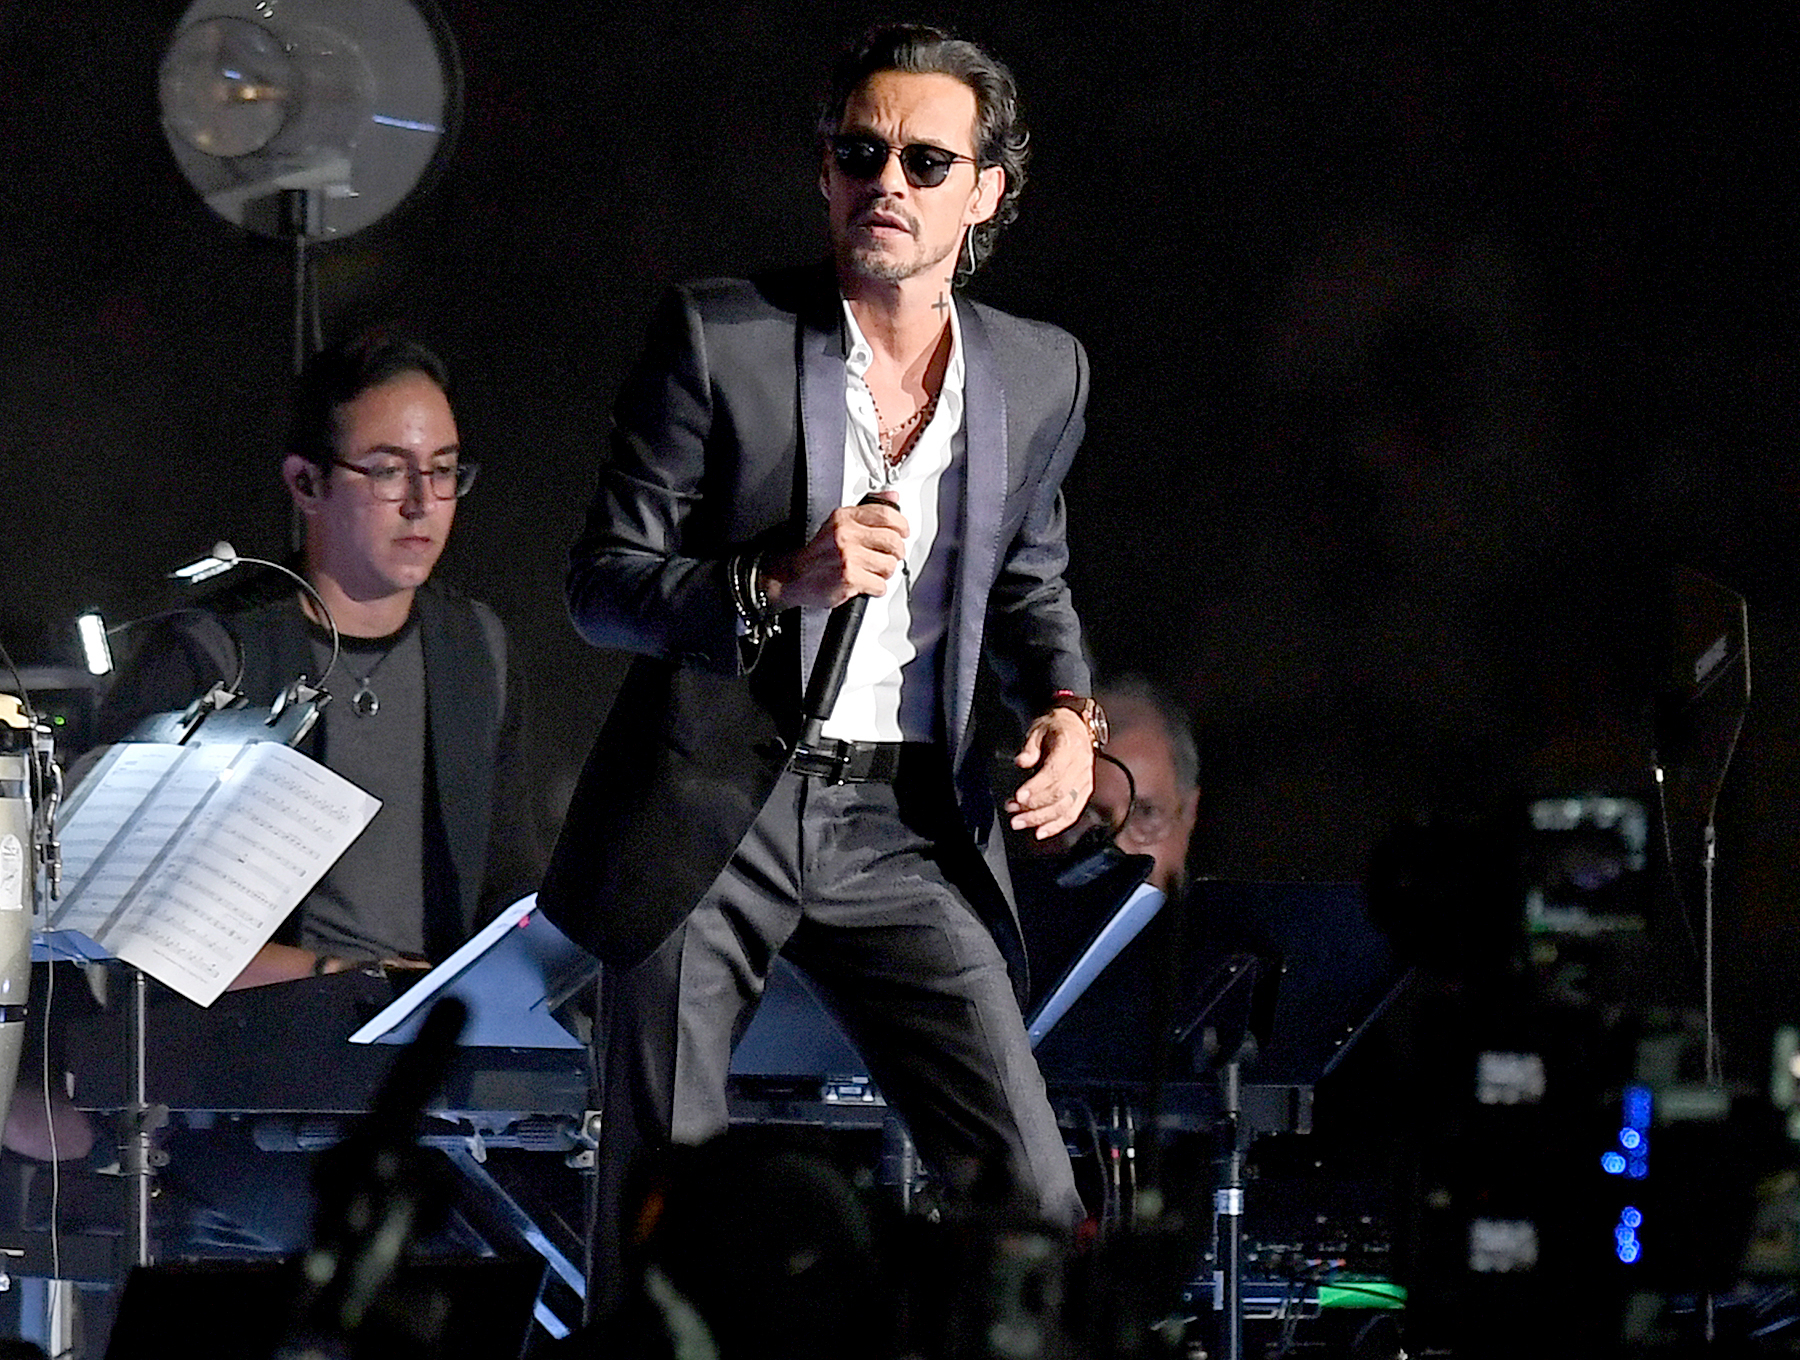 Marc Anthony performs during half time as Barcelona Vs Real Madrid at the International Champions Cup friendly match at Hard Rock Stadium on July 29, 2017.